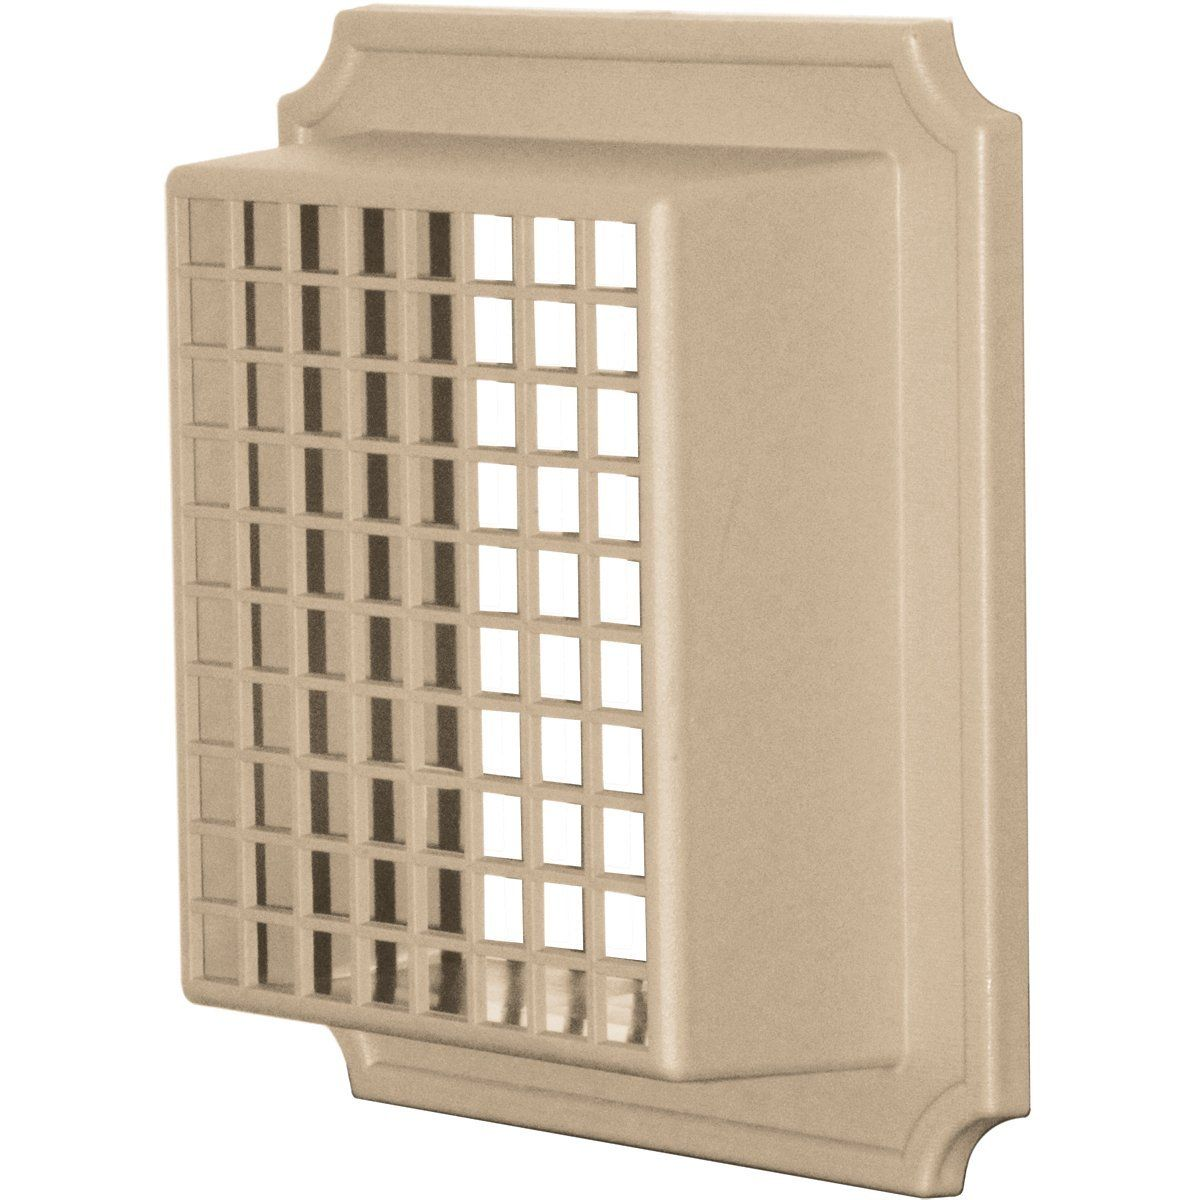 Builders Edge 140157079069 Animal Guard for Exhaust Vent 069, Tan ** Check this awesome product by going to the link at the image.